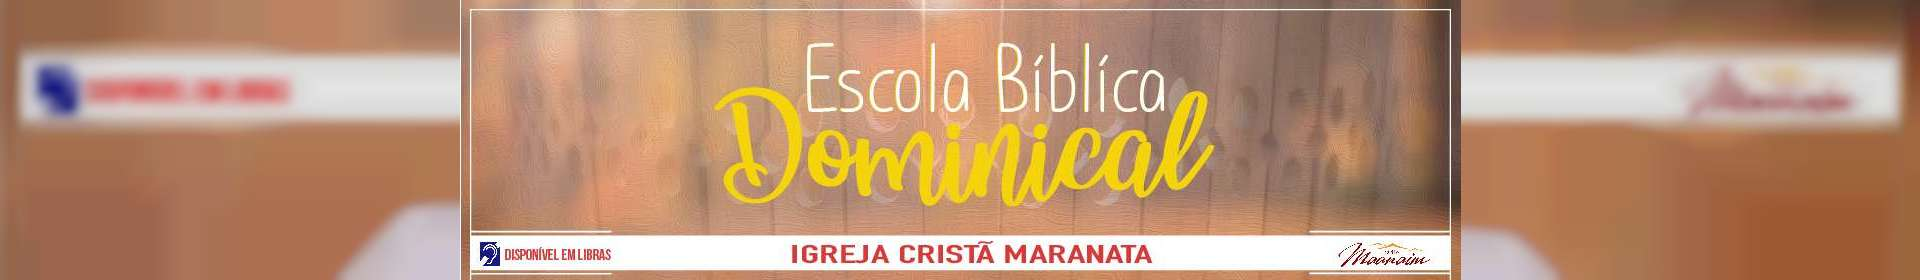 Escola Bíblica Dominical - 19/05/2019